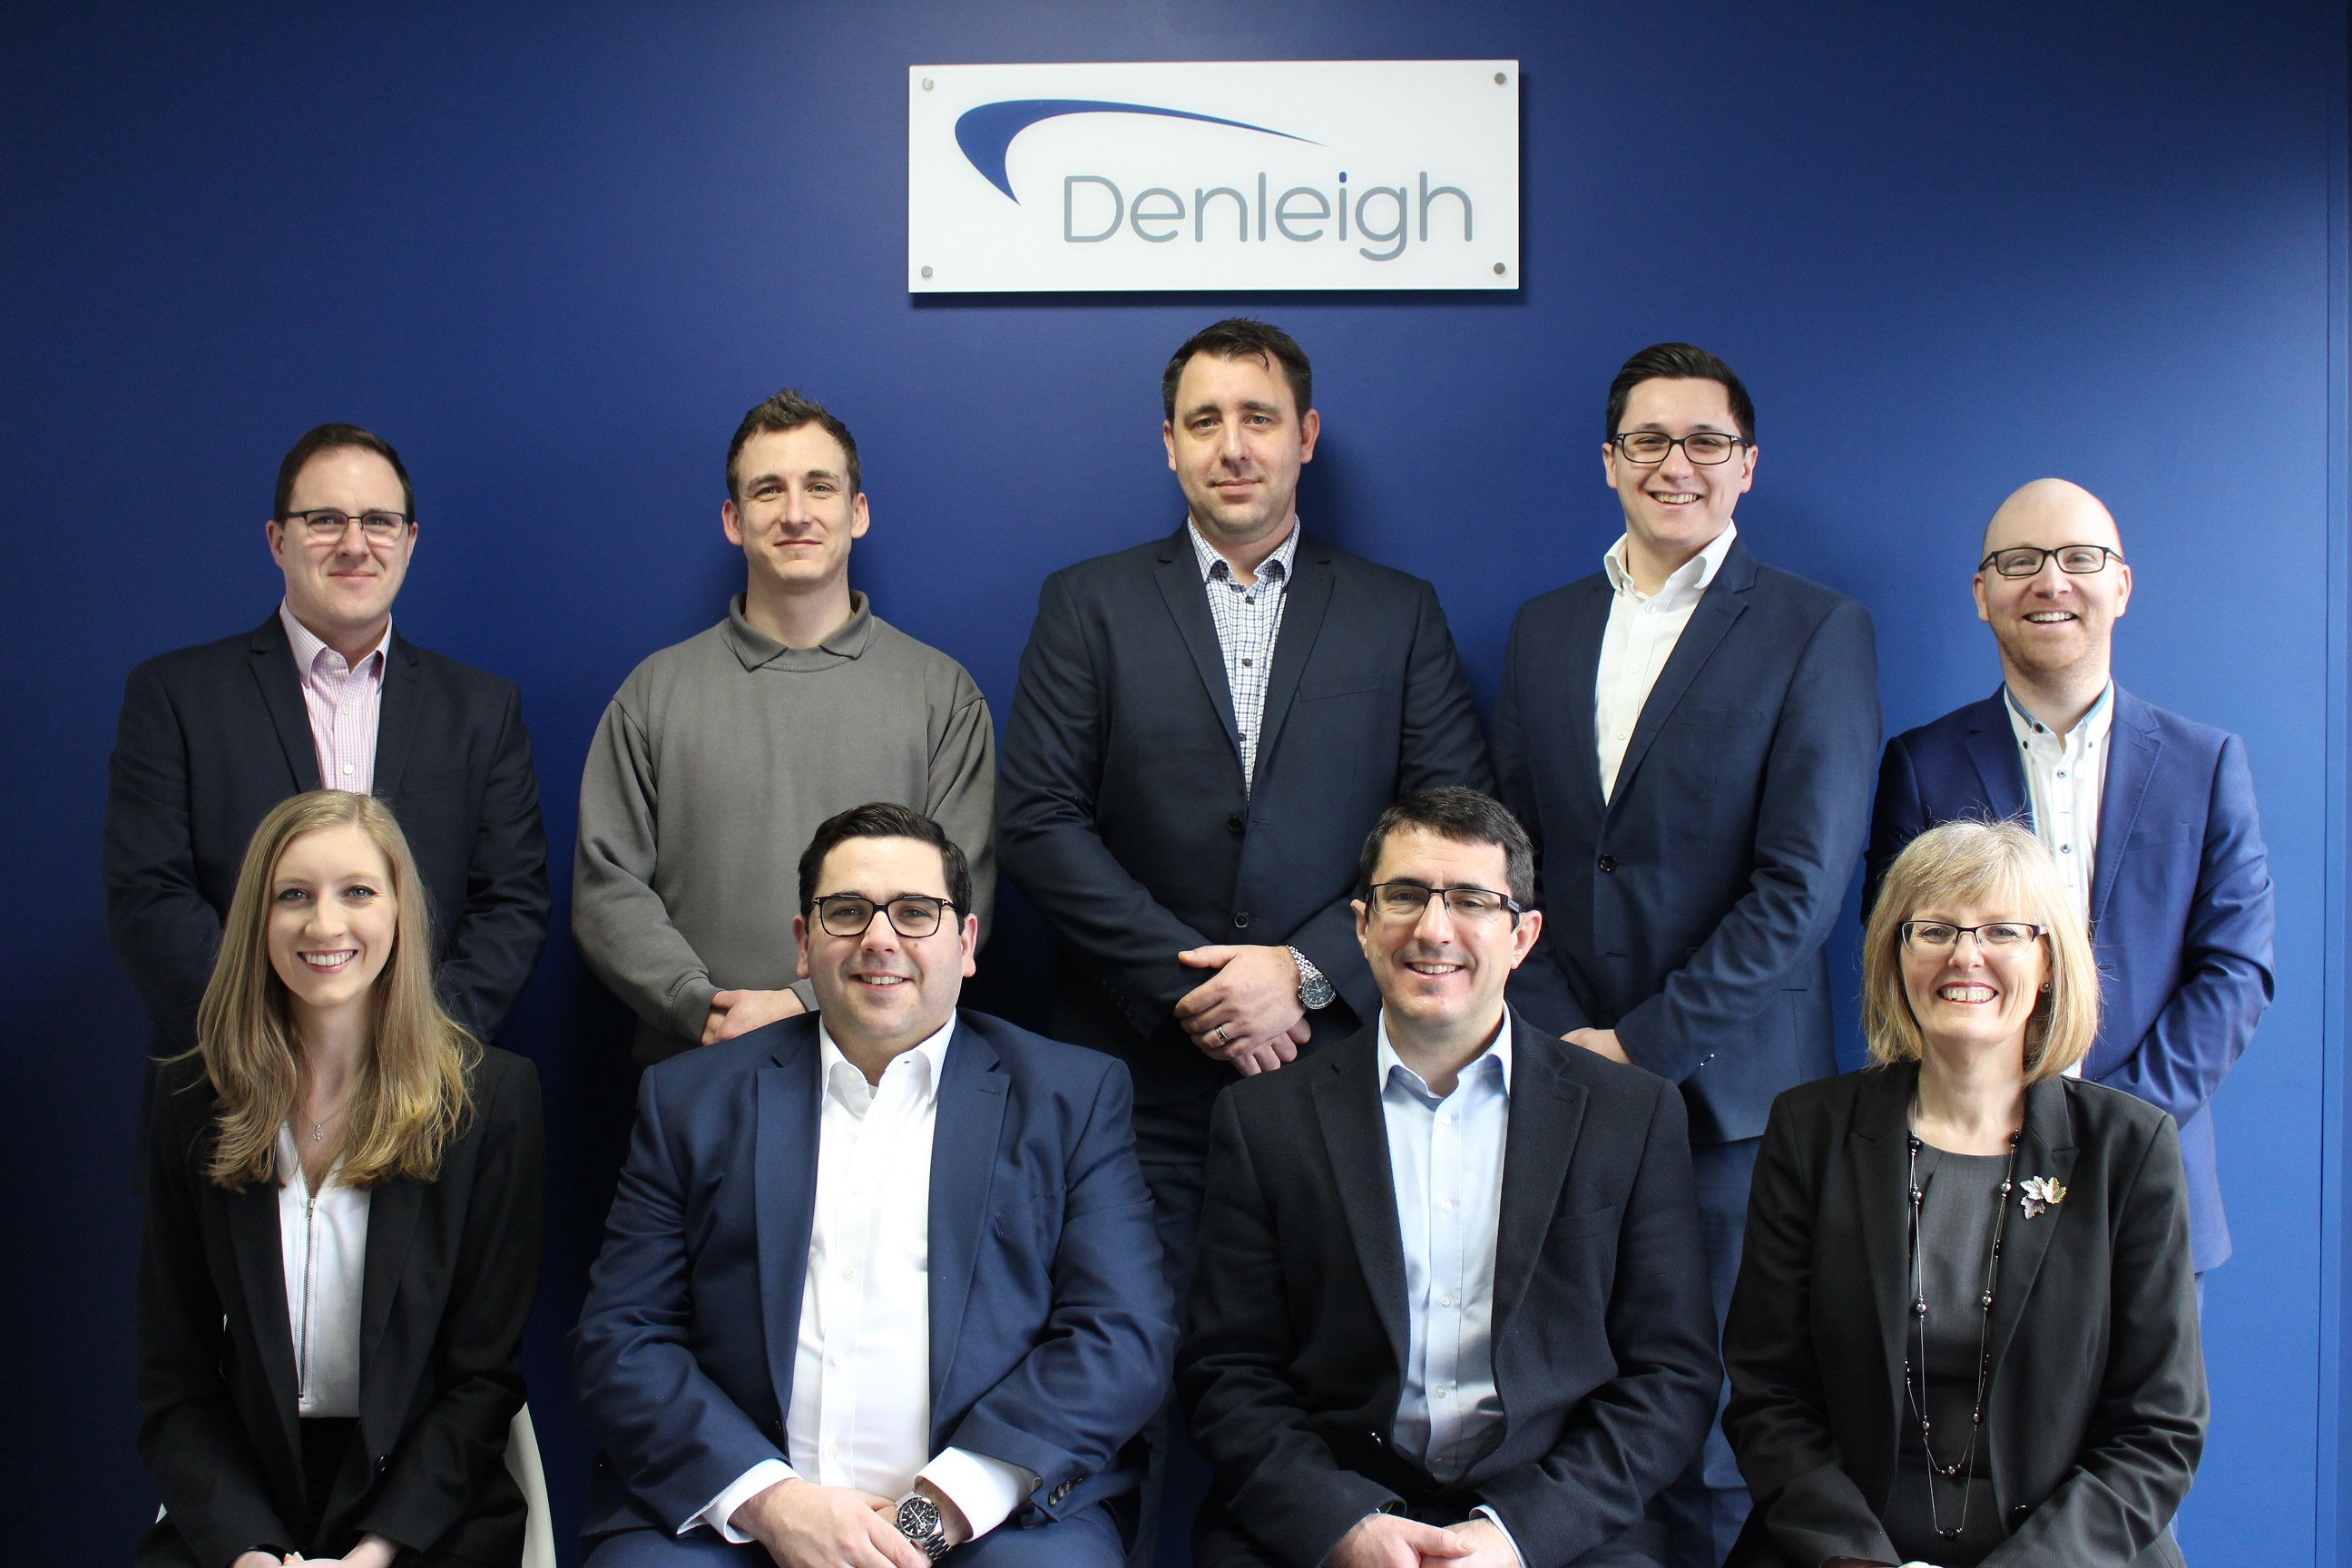 The Denleigh Team